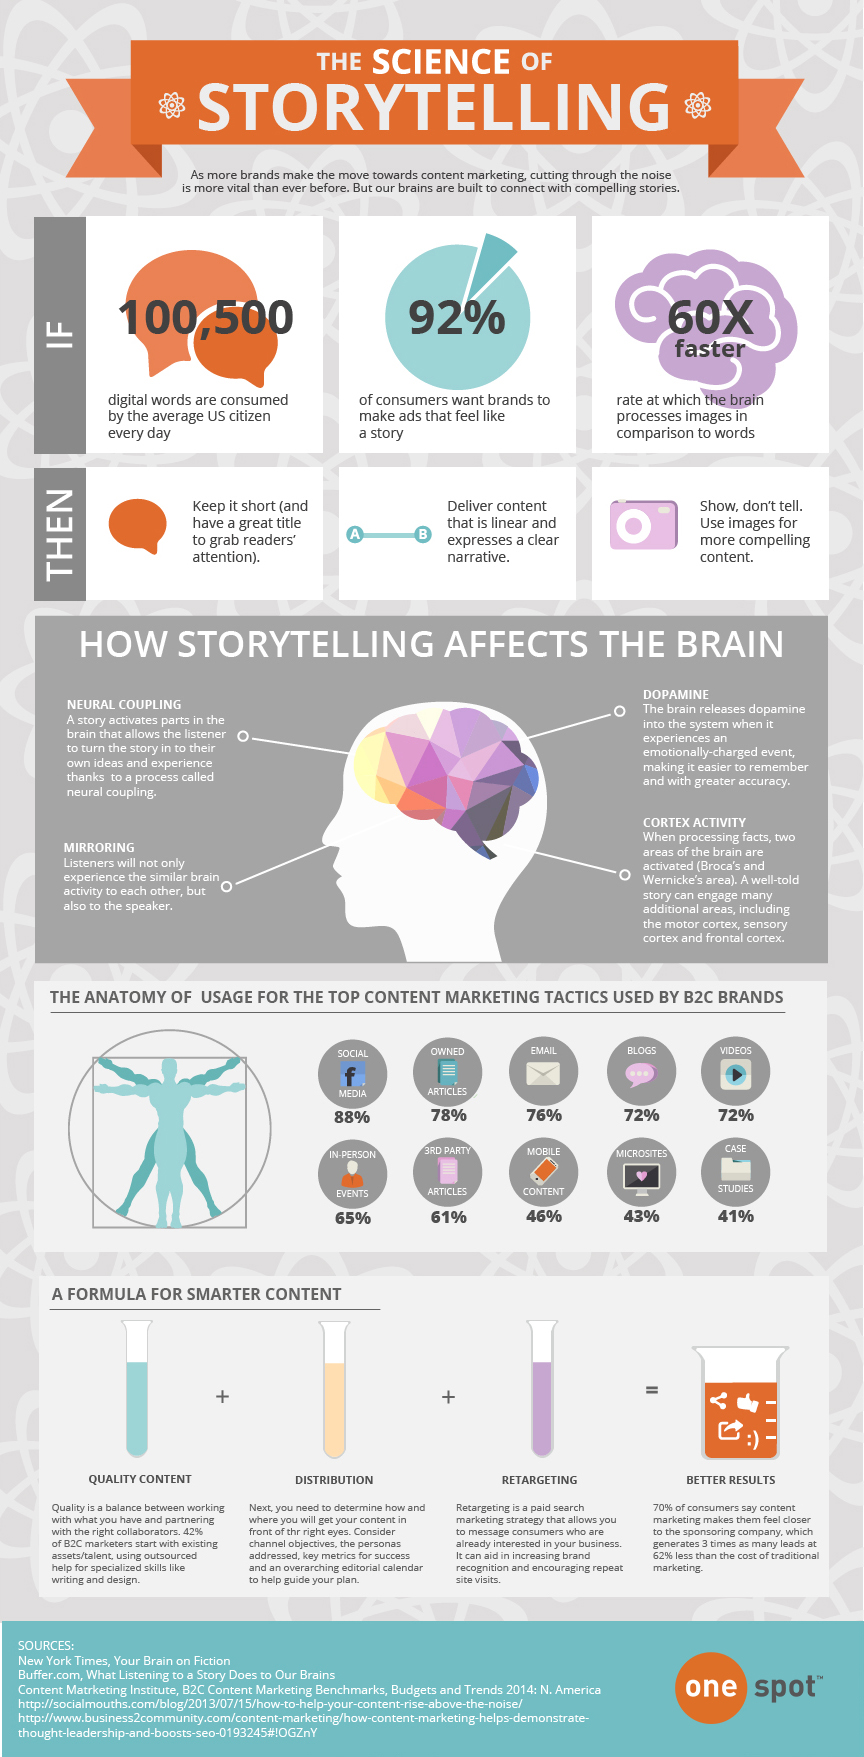 The Science of Storytelling Visually Explained